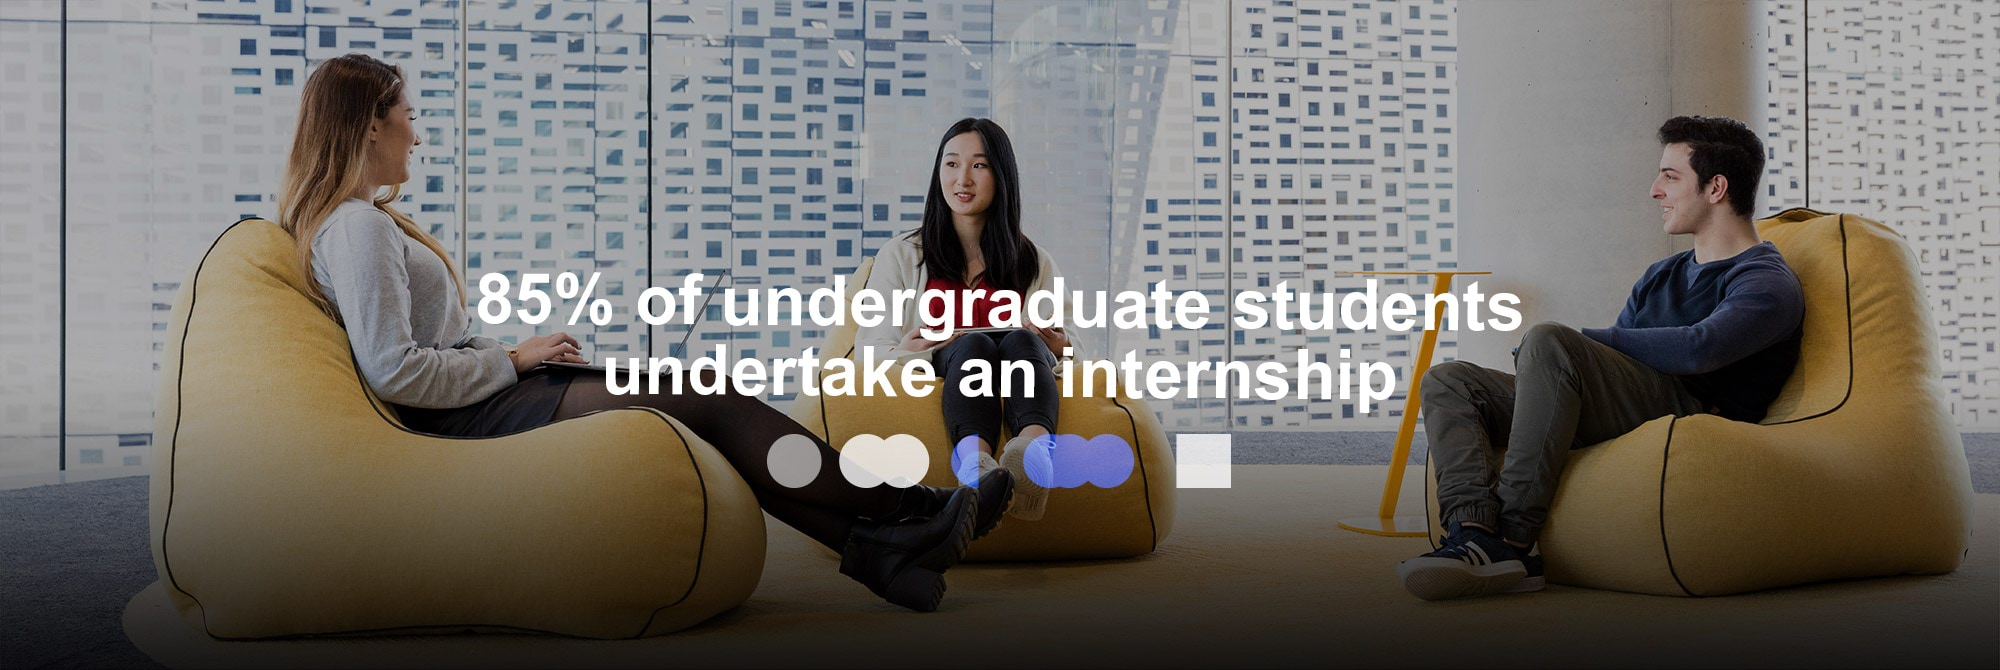 85% of undergraduate students undertake an internship